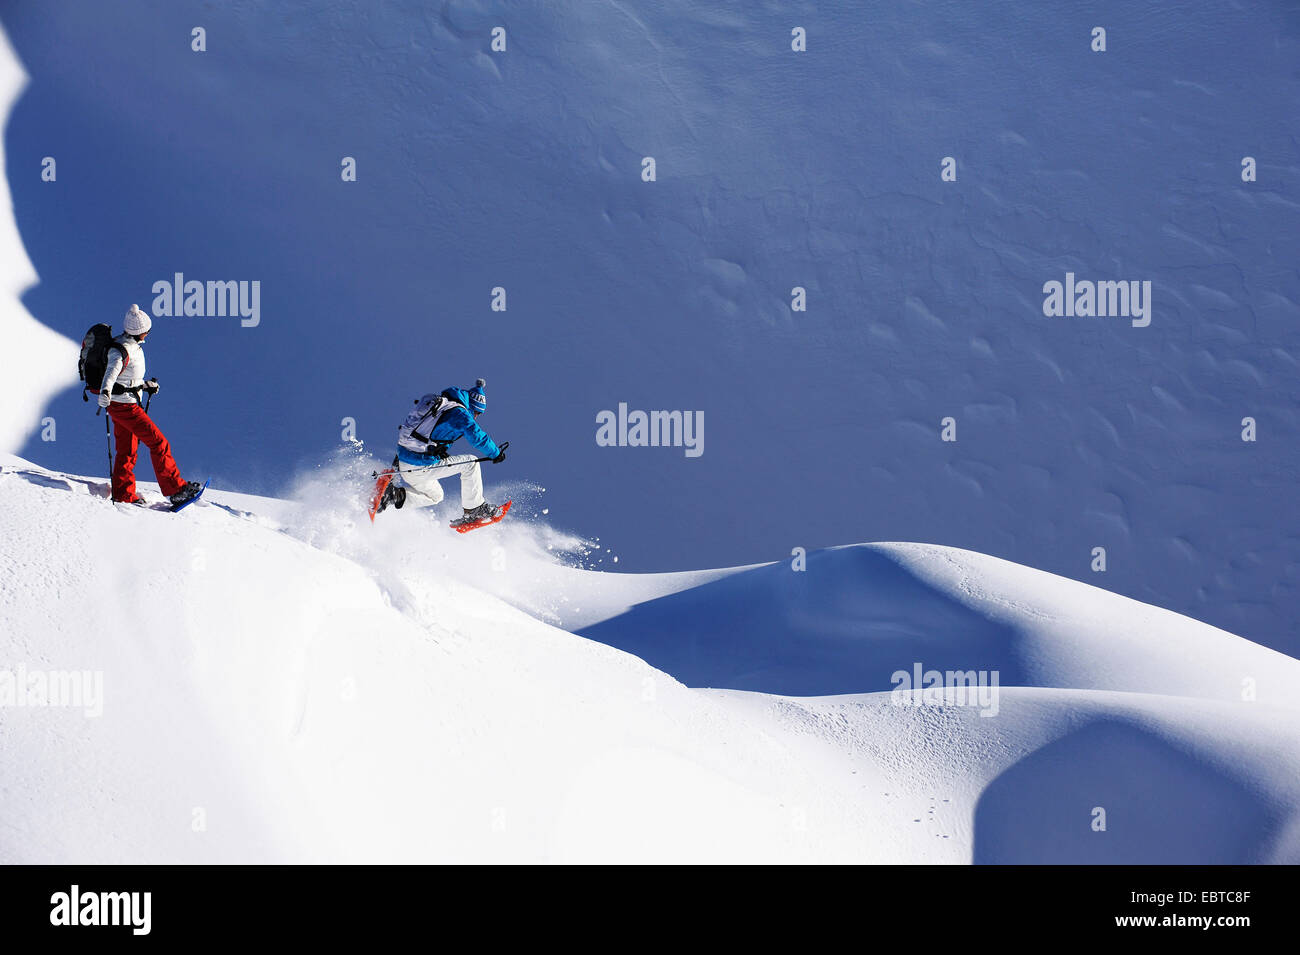 man and woman with snow shoes on a snow-covered slope, France Stock Photo